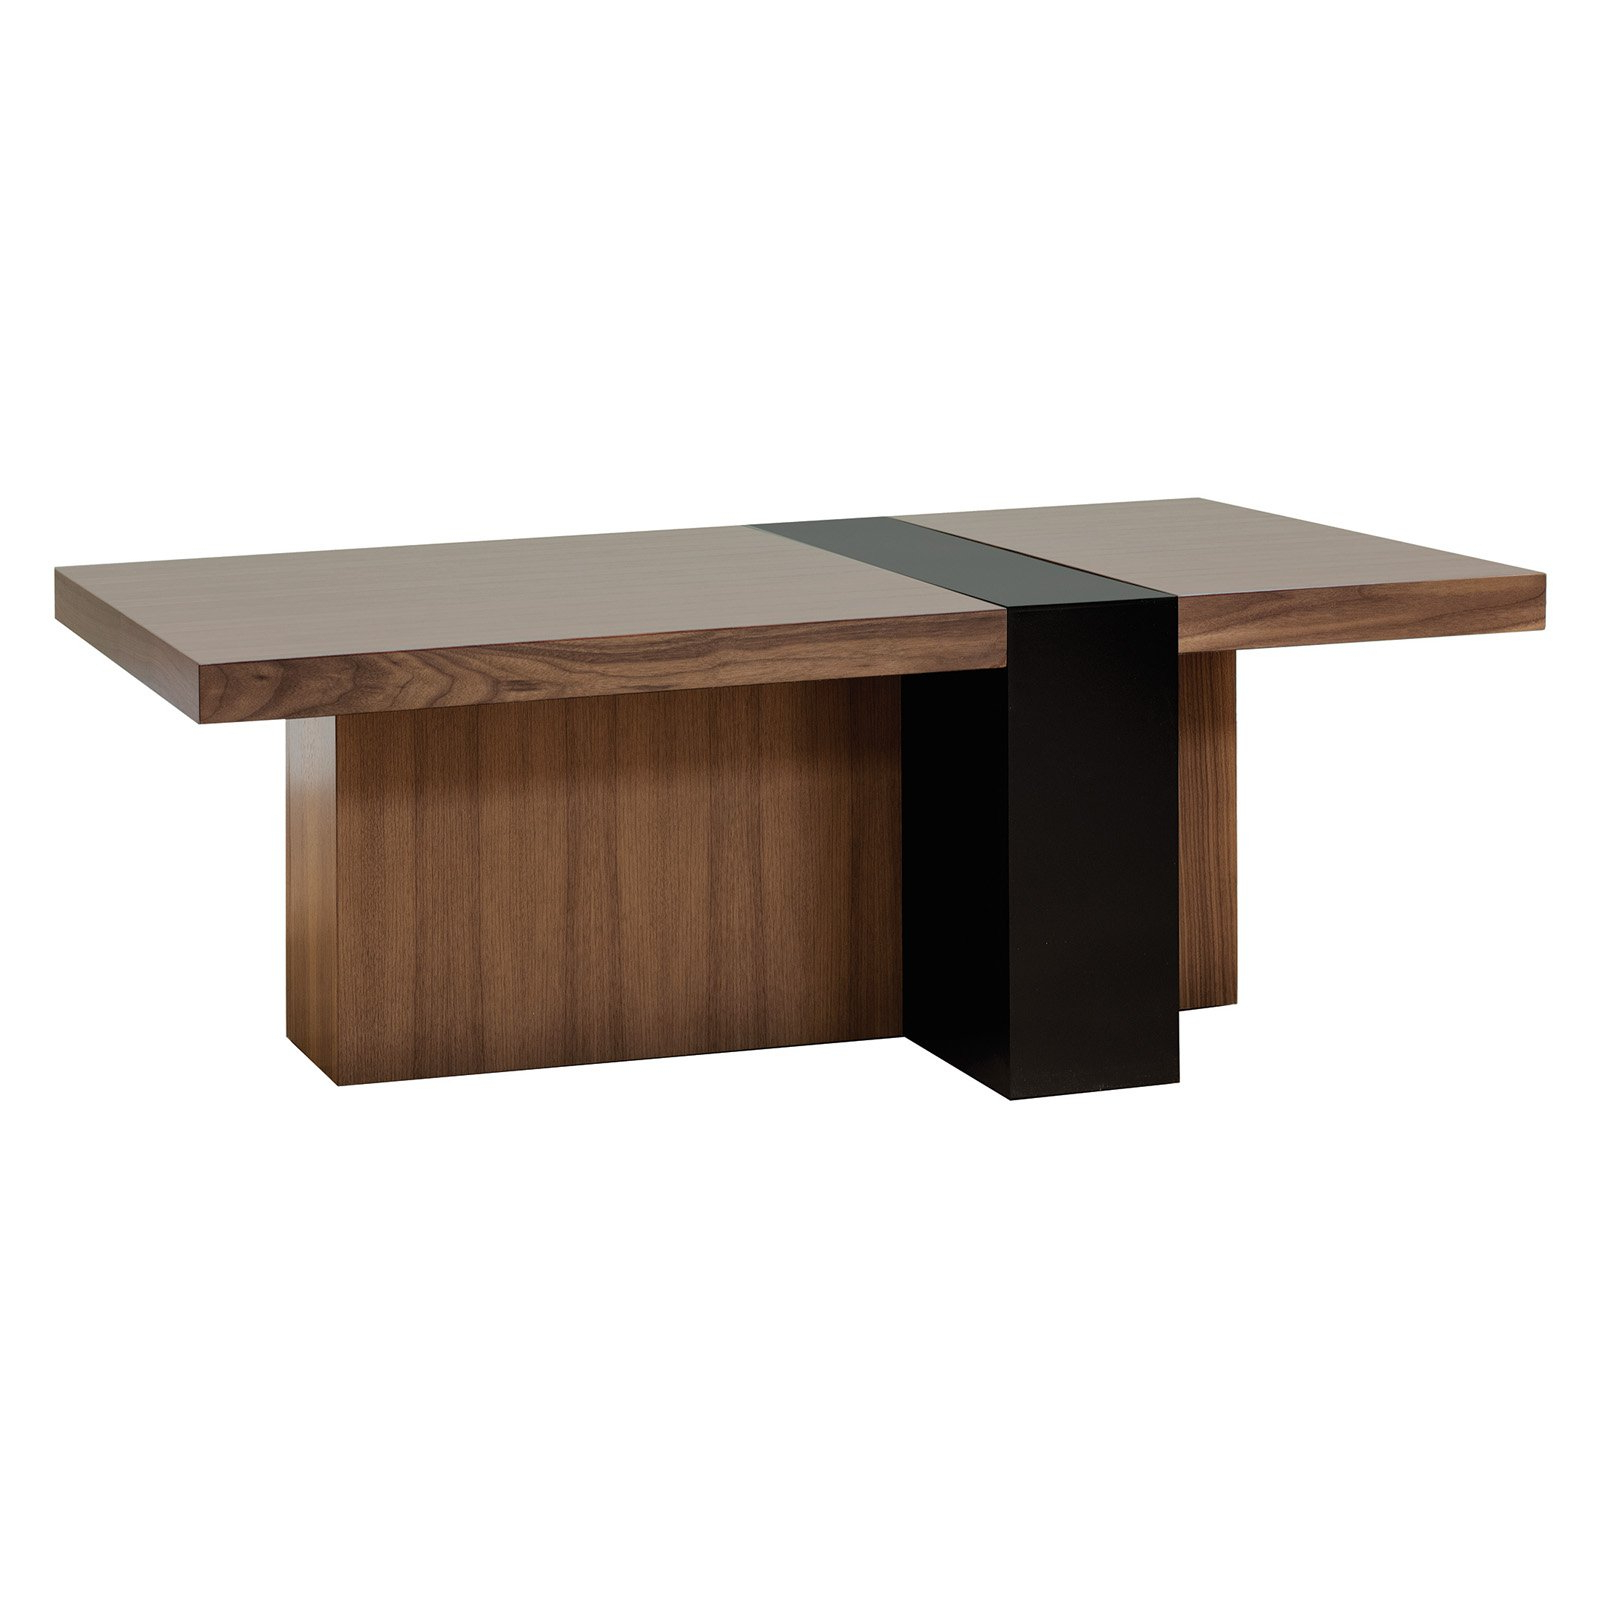 Famous Martin Furniture Stratus Coffee Table – Walmart For Stratus Cocktail Tables (View 3 of 20)